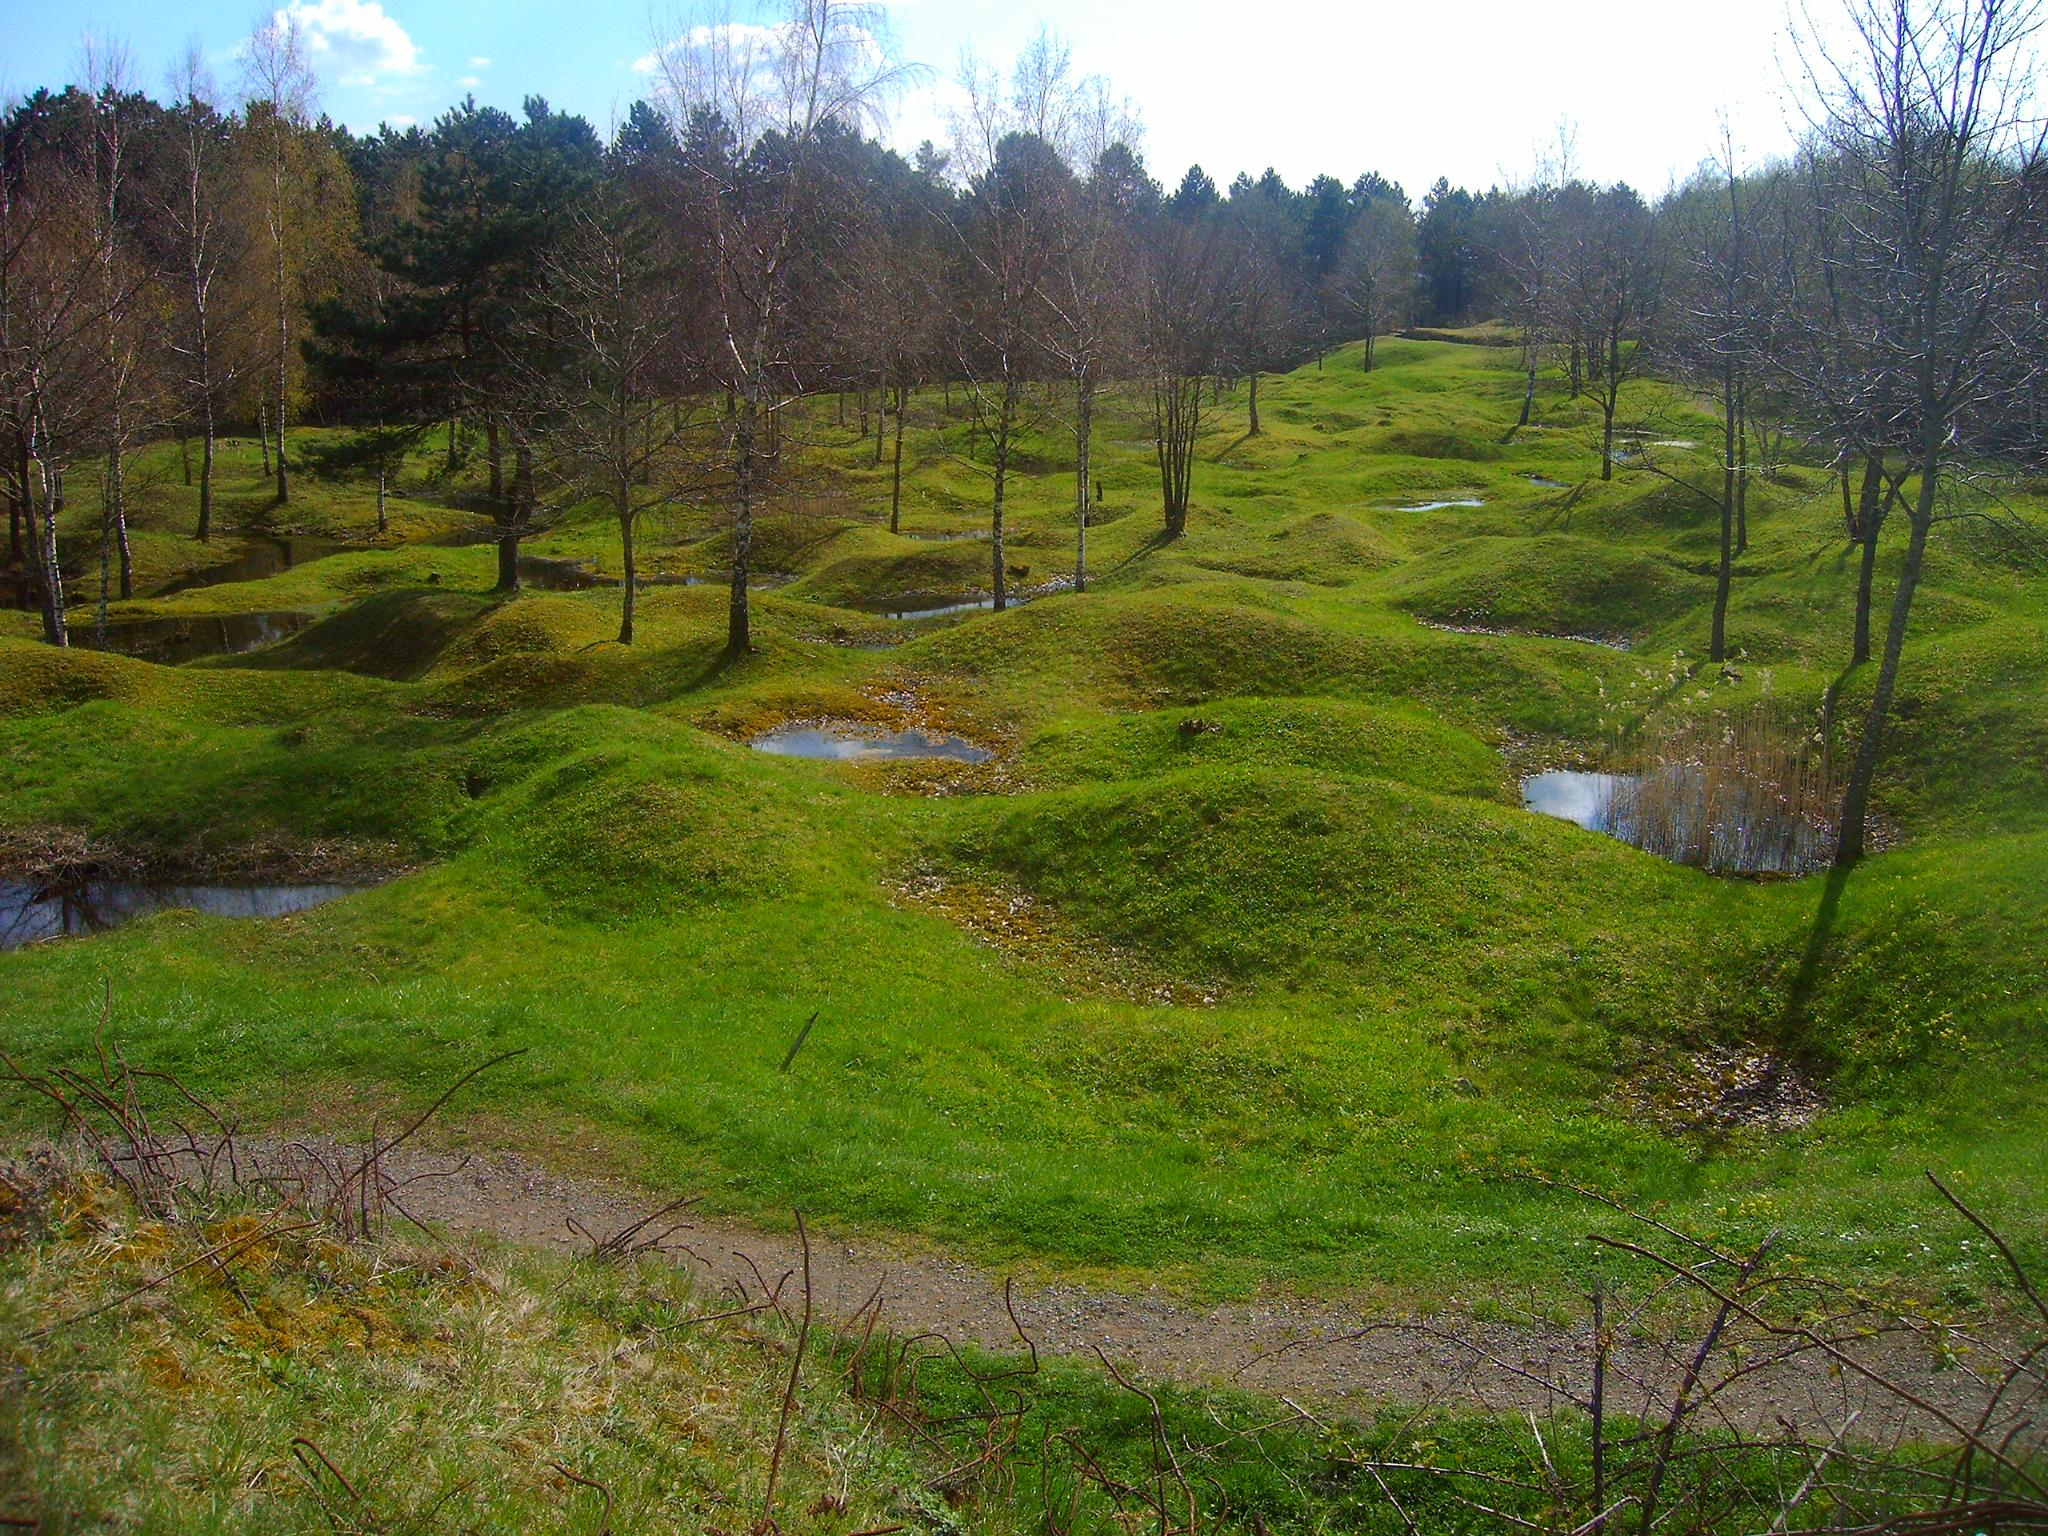 The Verdun battlefield today